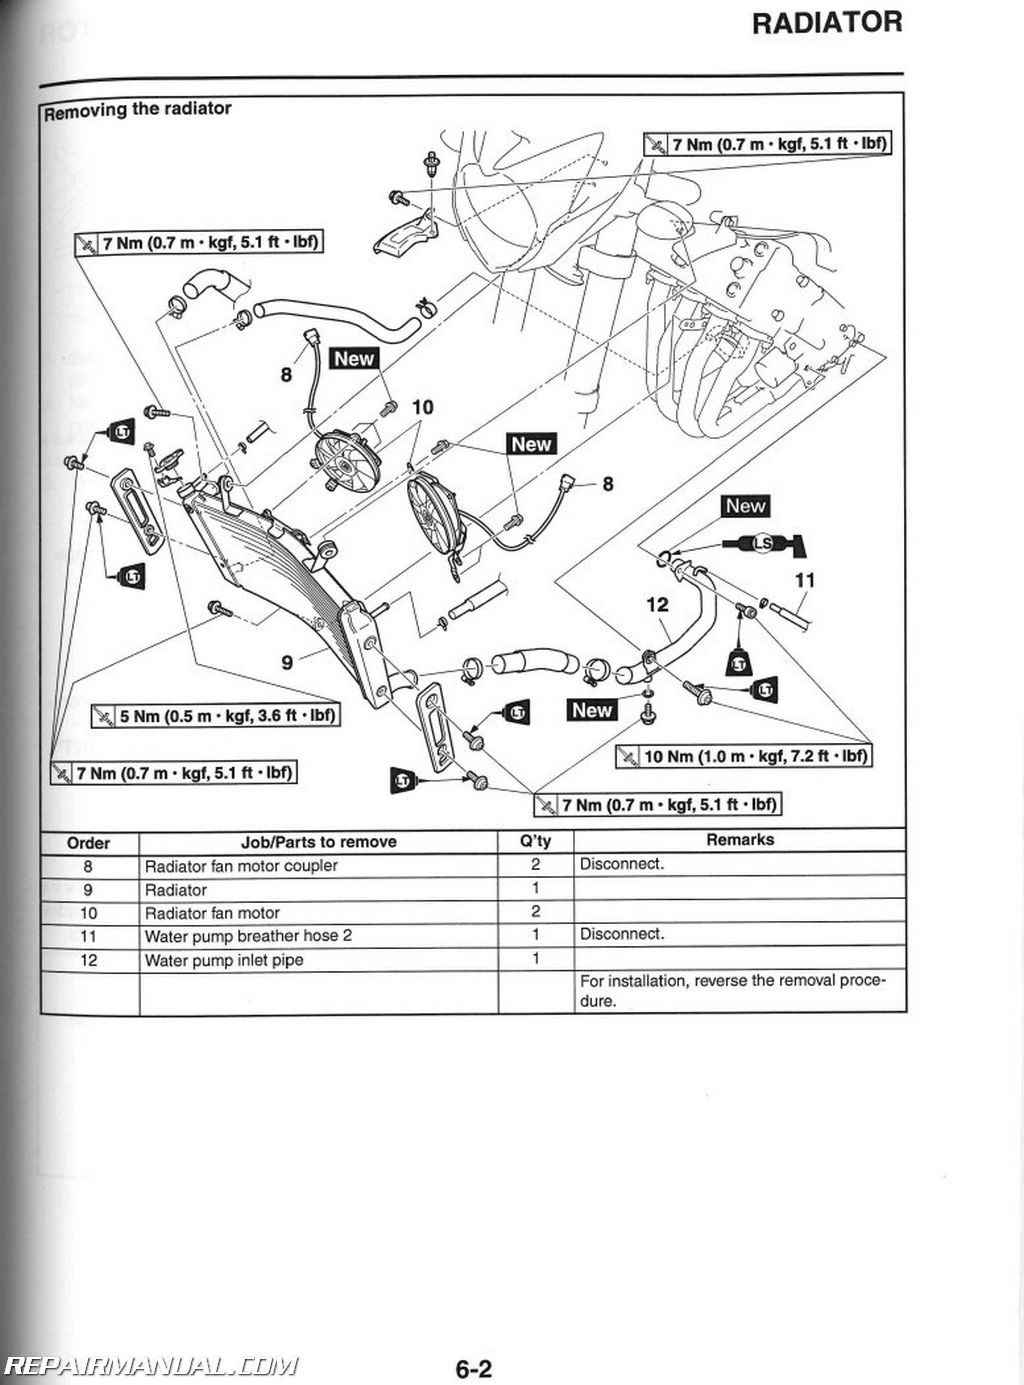 134 Golf 6 Gti Cobra Sport Decat Downpipe Se21 together with Car Wiring Diagrams App furthermore 2000 Yamaha Gp1200 Starter Motor moreover Electrical Schematic Mercury Outboard Motors furthermore GTI 20VR6. on golf cart cooling system